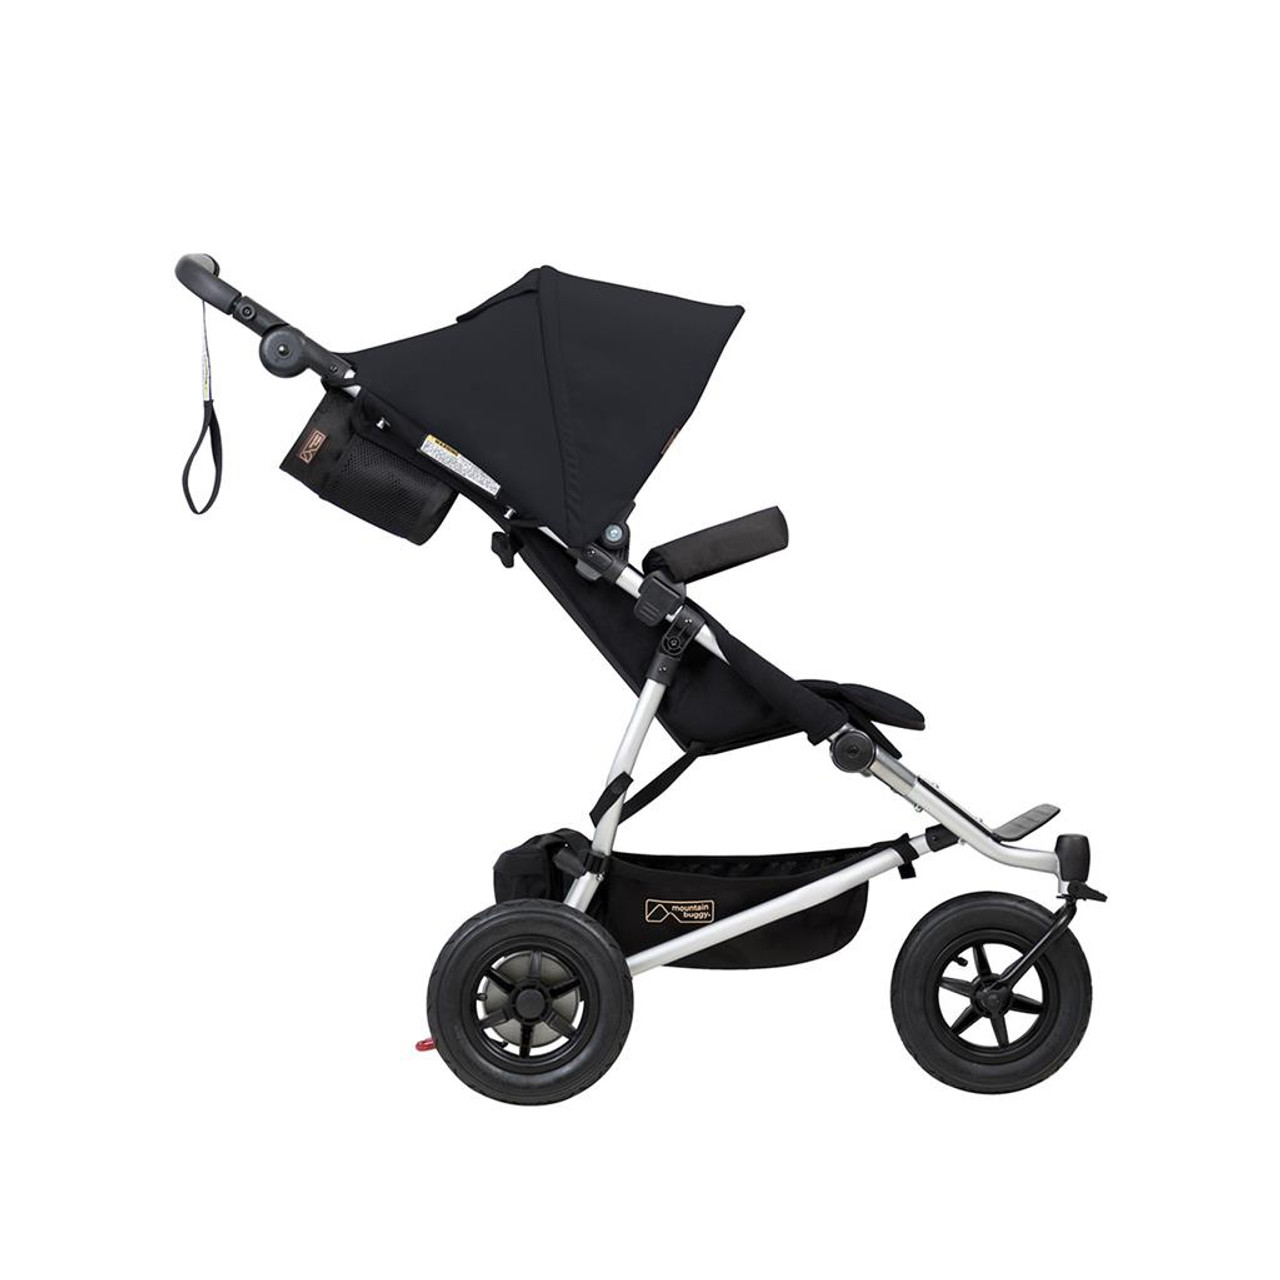 Mountain Buggy Duet V3.2 BLACK at Baby Barn Discounts Mountain Buggy Duet 2020 version double pram with polyester fabric.